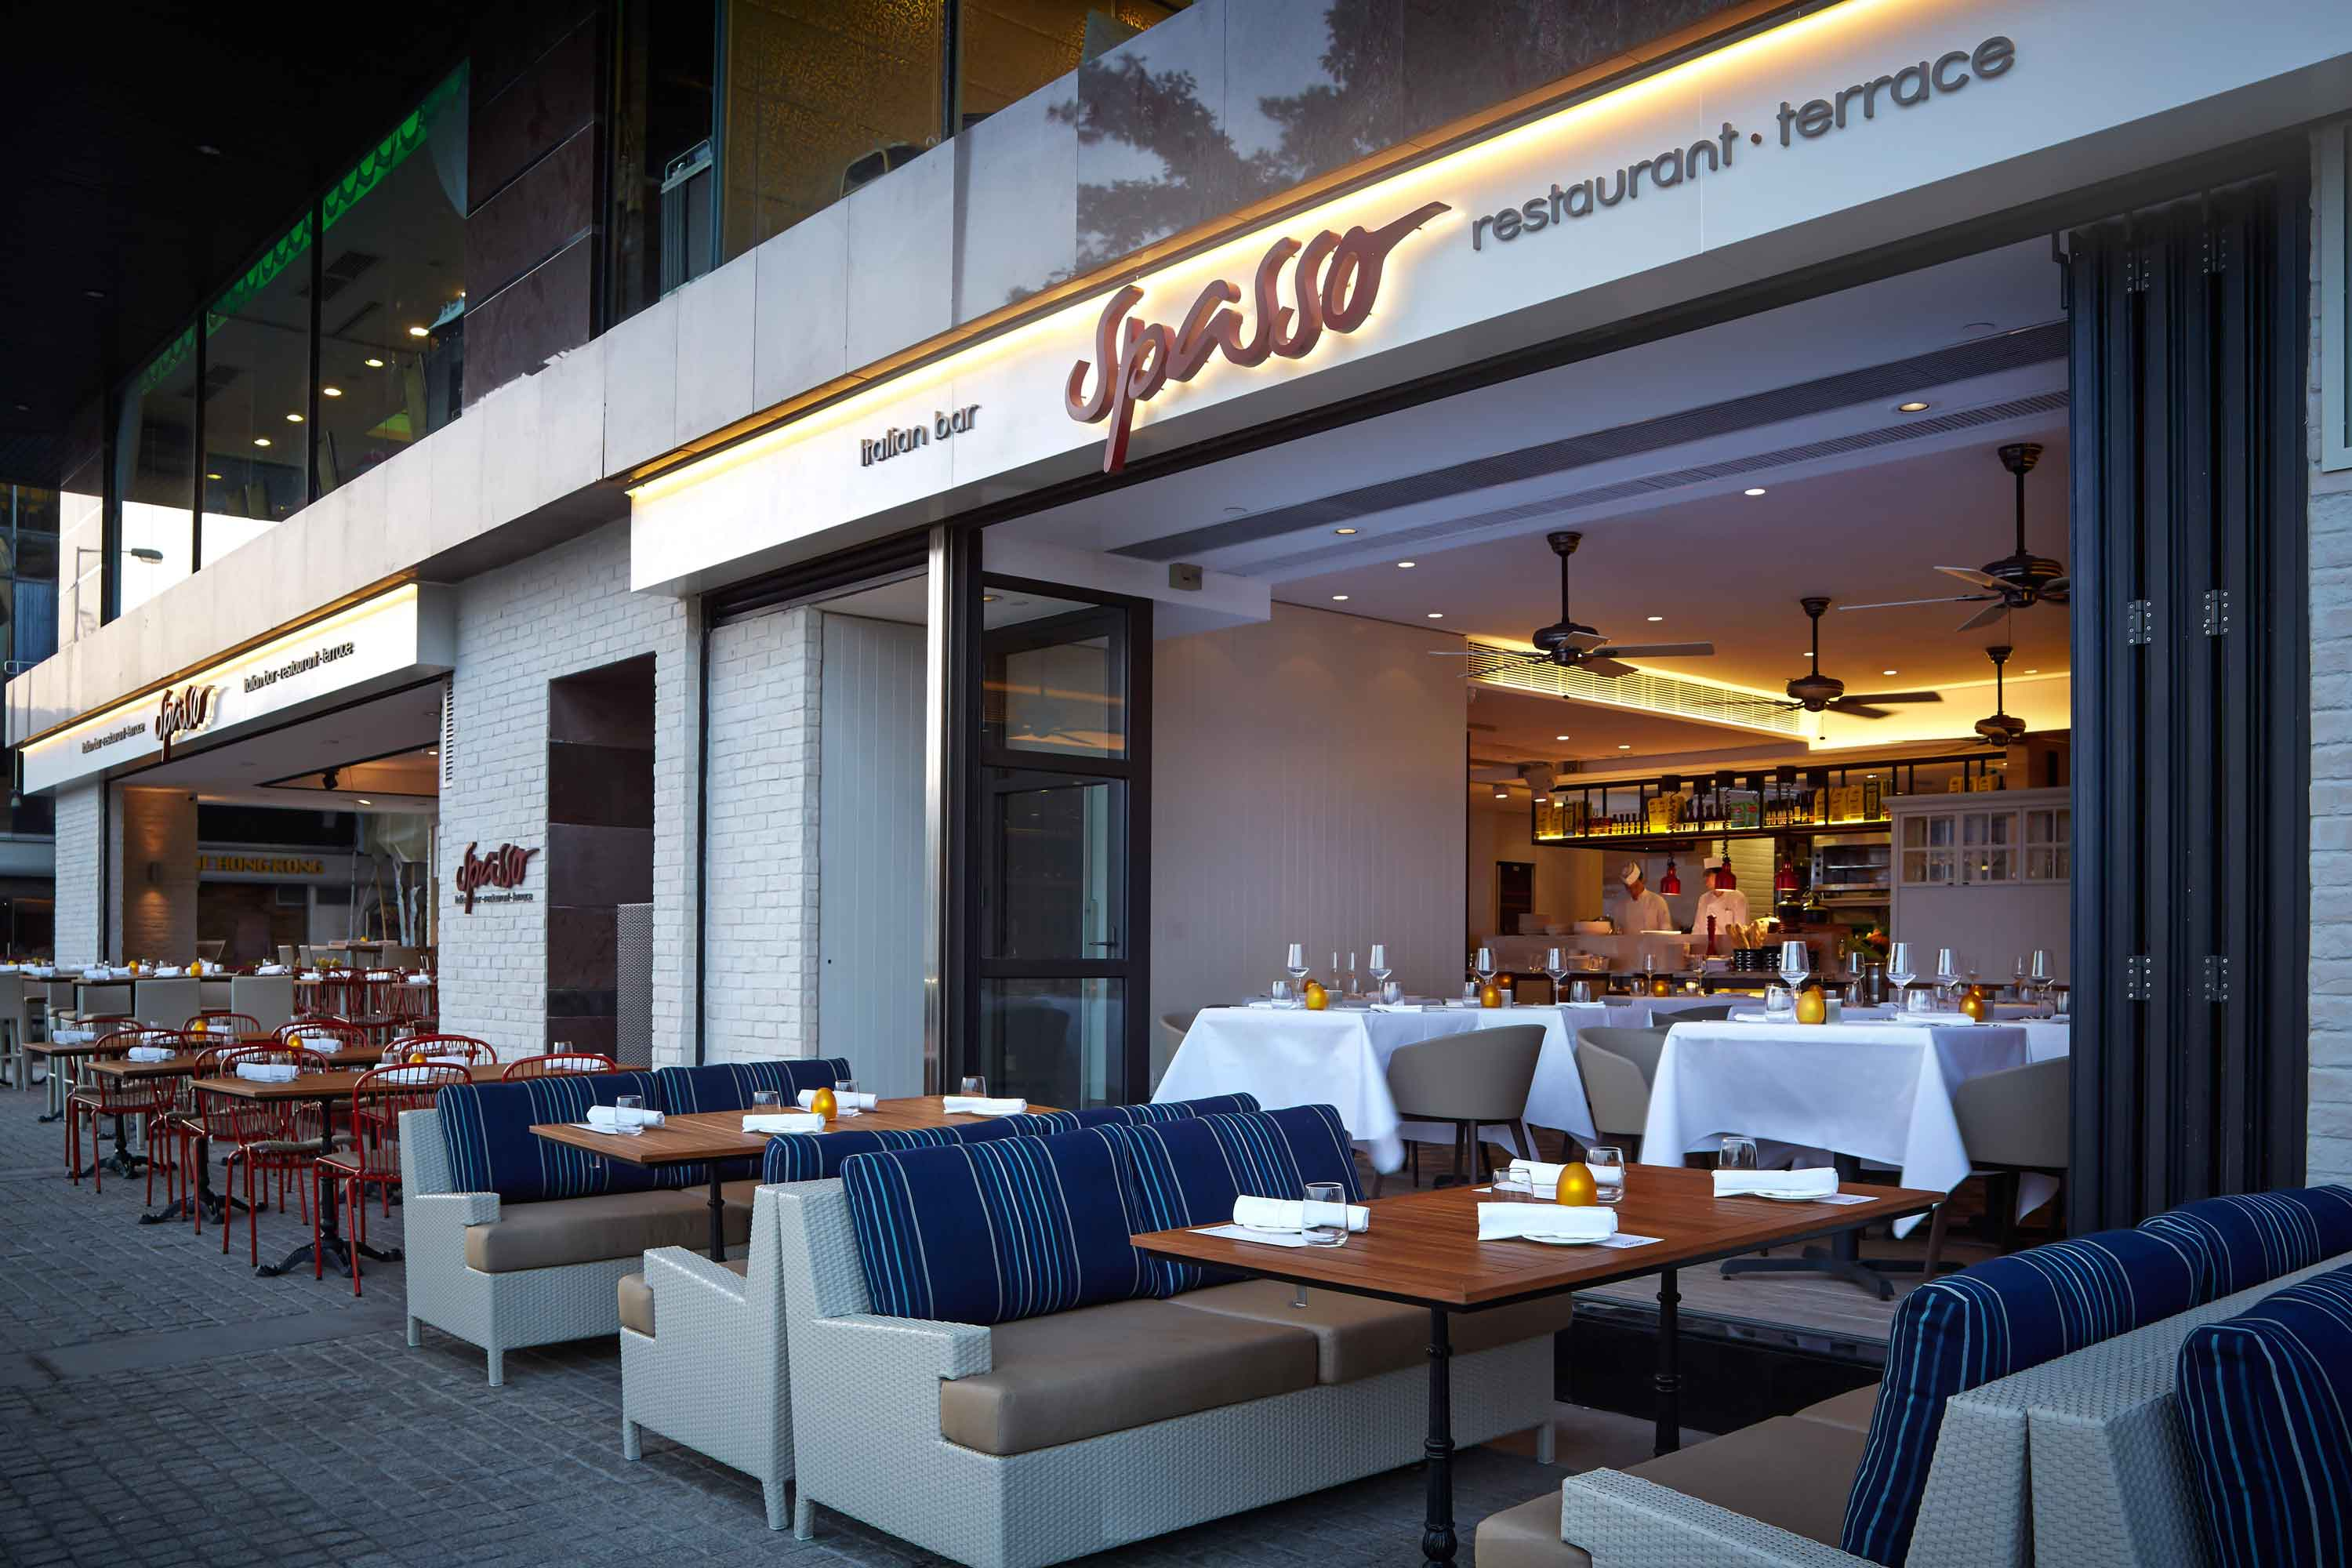 Spasso unveils al fresco terraces for a stylish dining experience boasting stunning views of Hong Kong's skyline